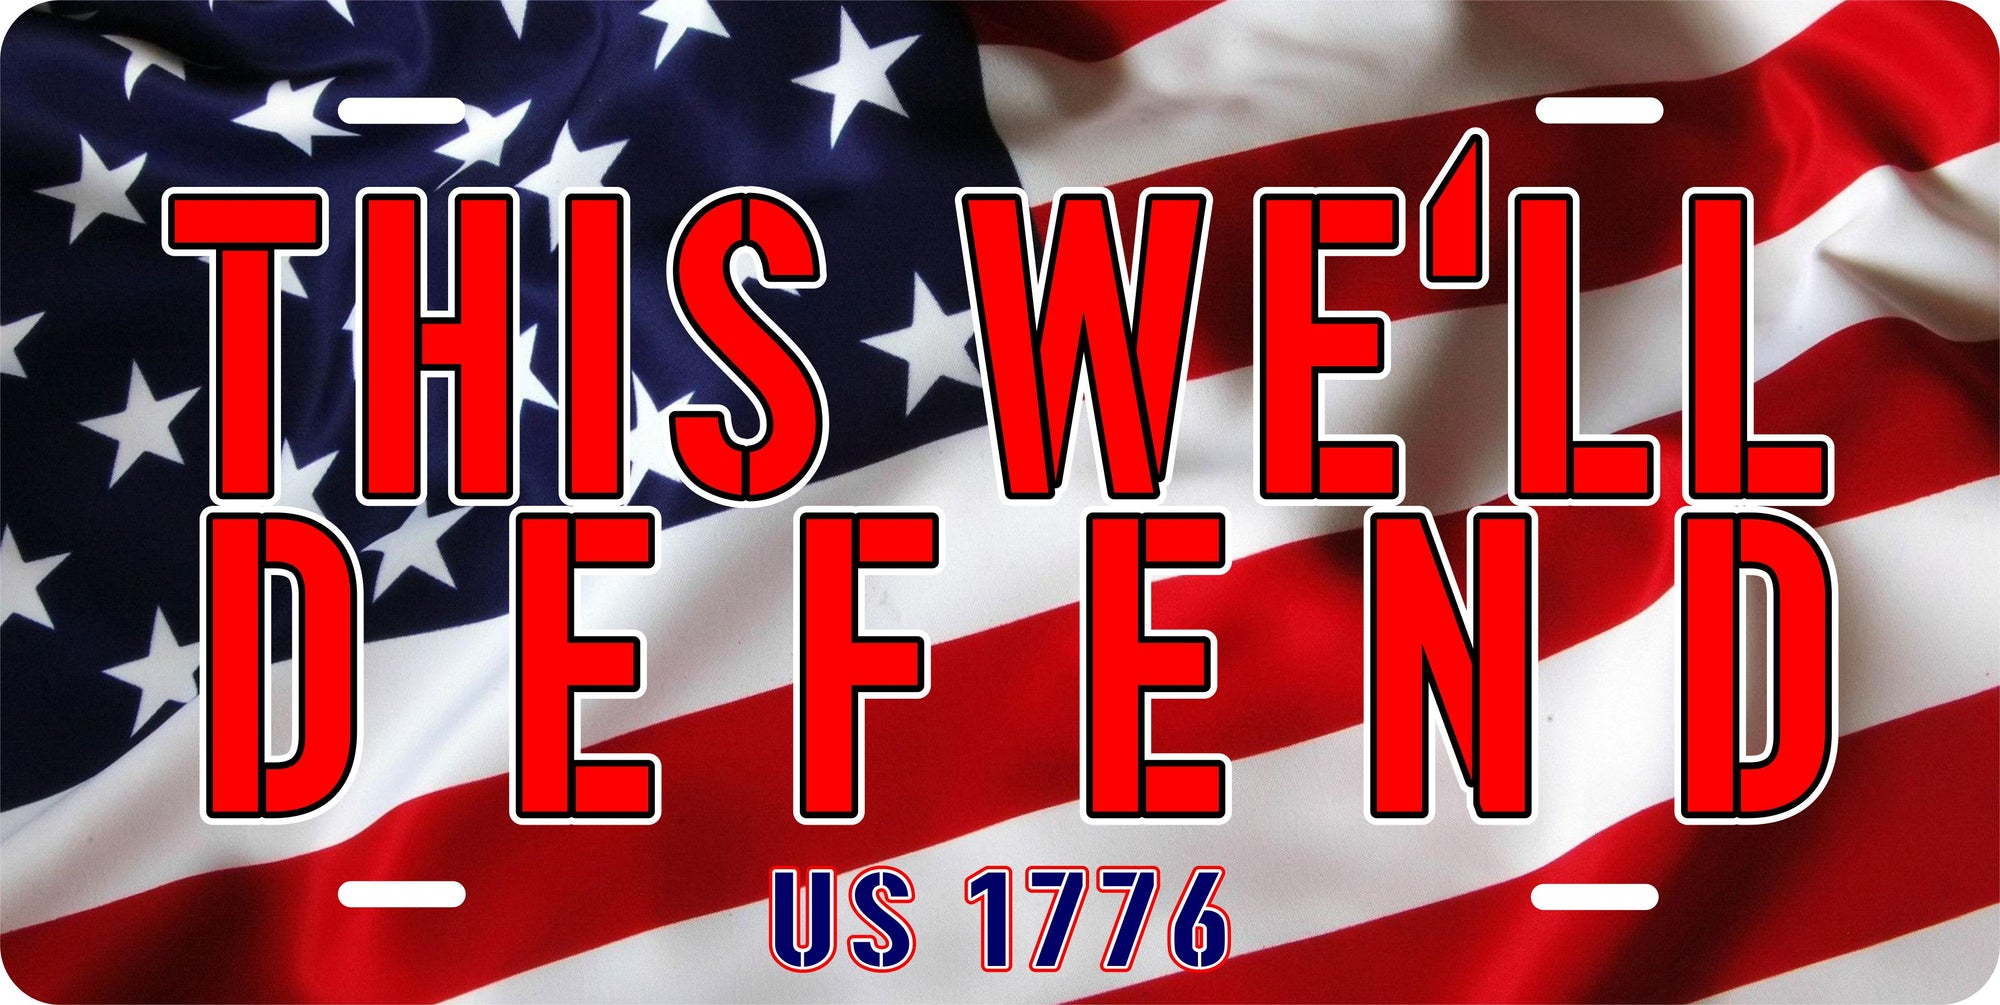 This We'll Defend US 1776 License Plate | Grit Style Gear